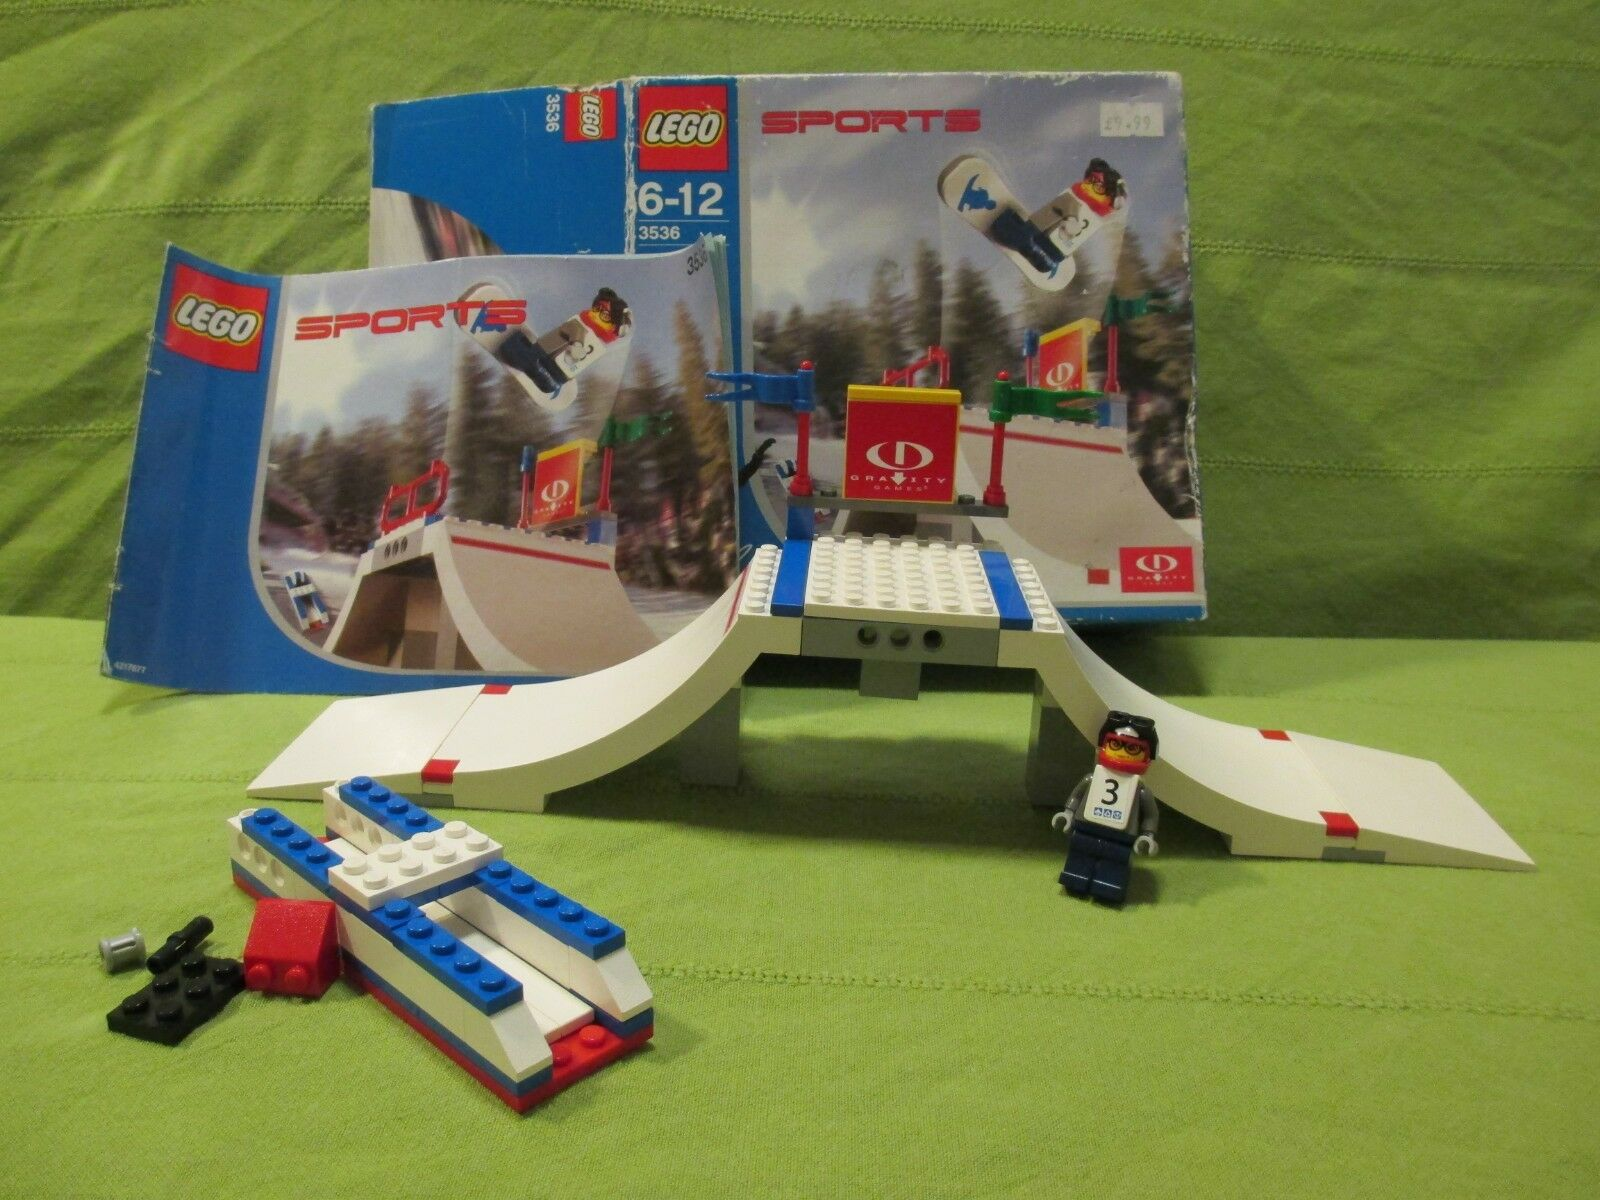 LEGO SPORTS Set 3536 - Gravity Games Big Air Competition Inc. Box & Instructions